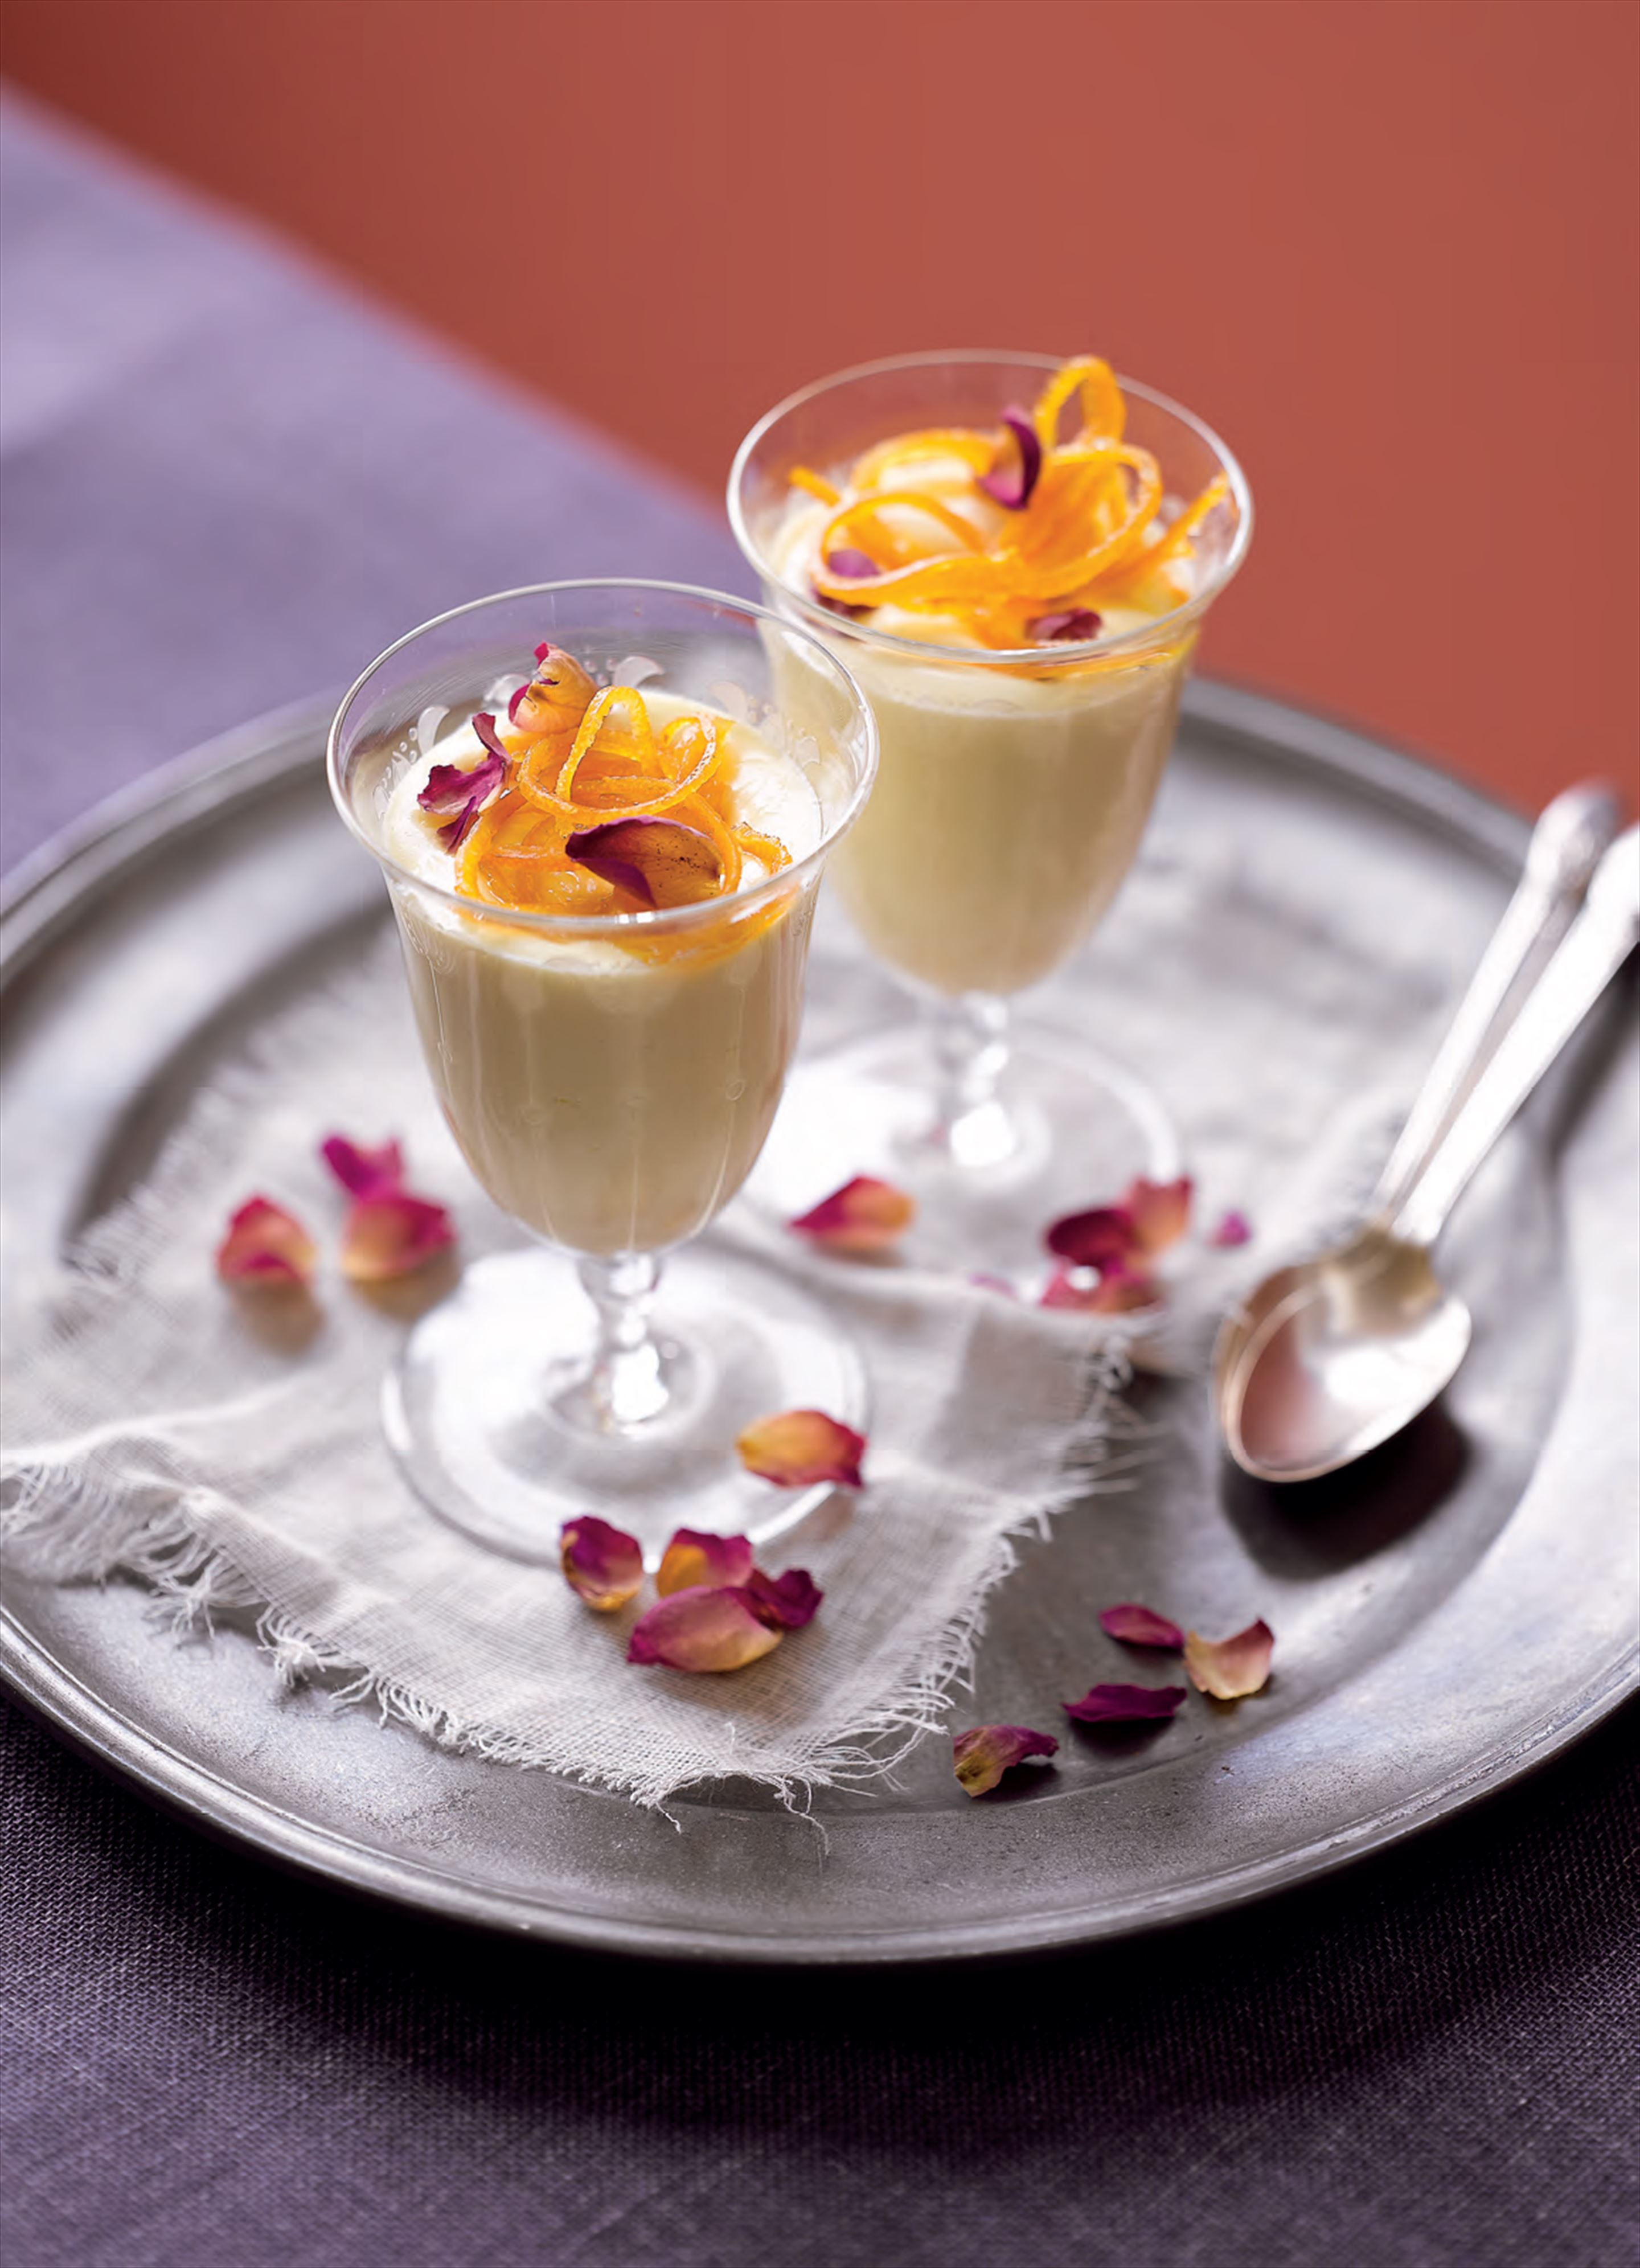 Rosewater–vanilla creams with candied orange peel